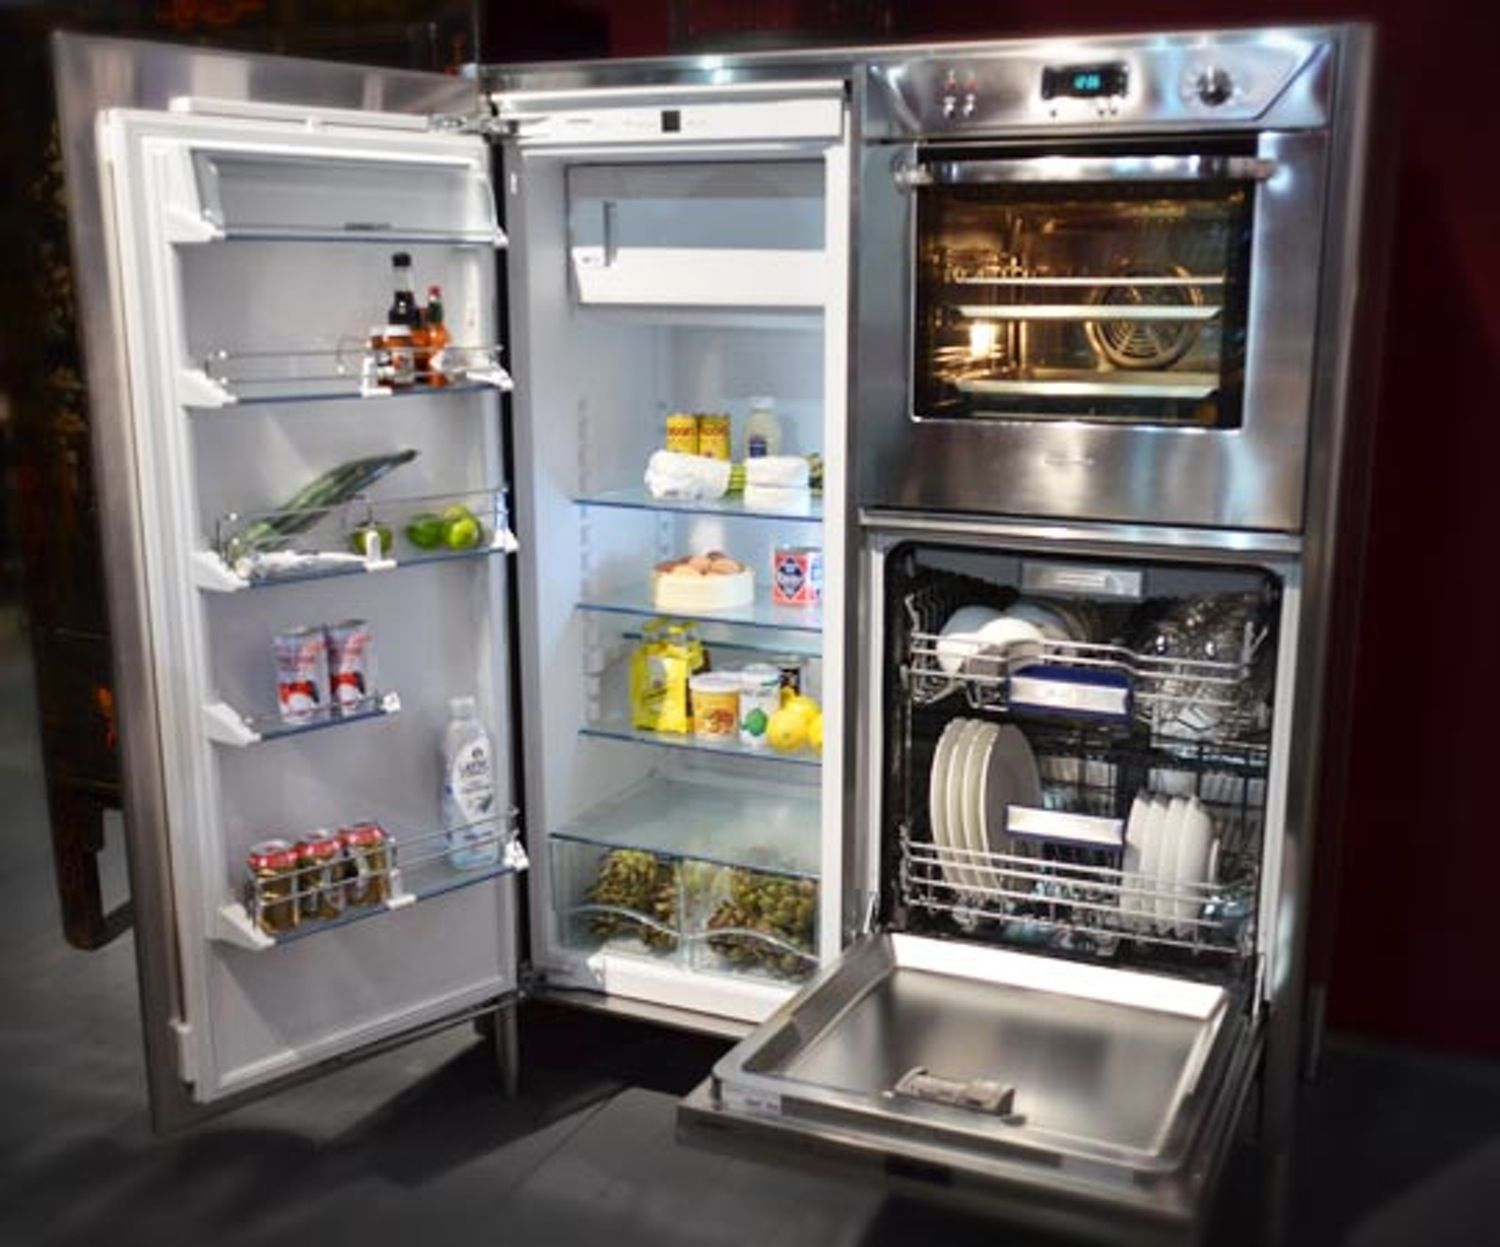 Combination Refrigerator Dishwasher Oven Unit From Alpes Inox